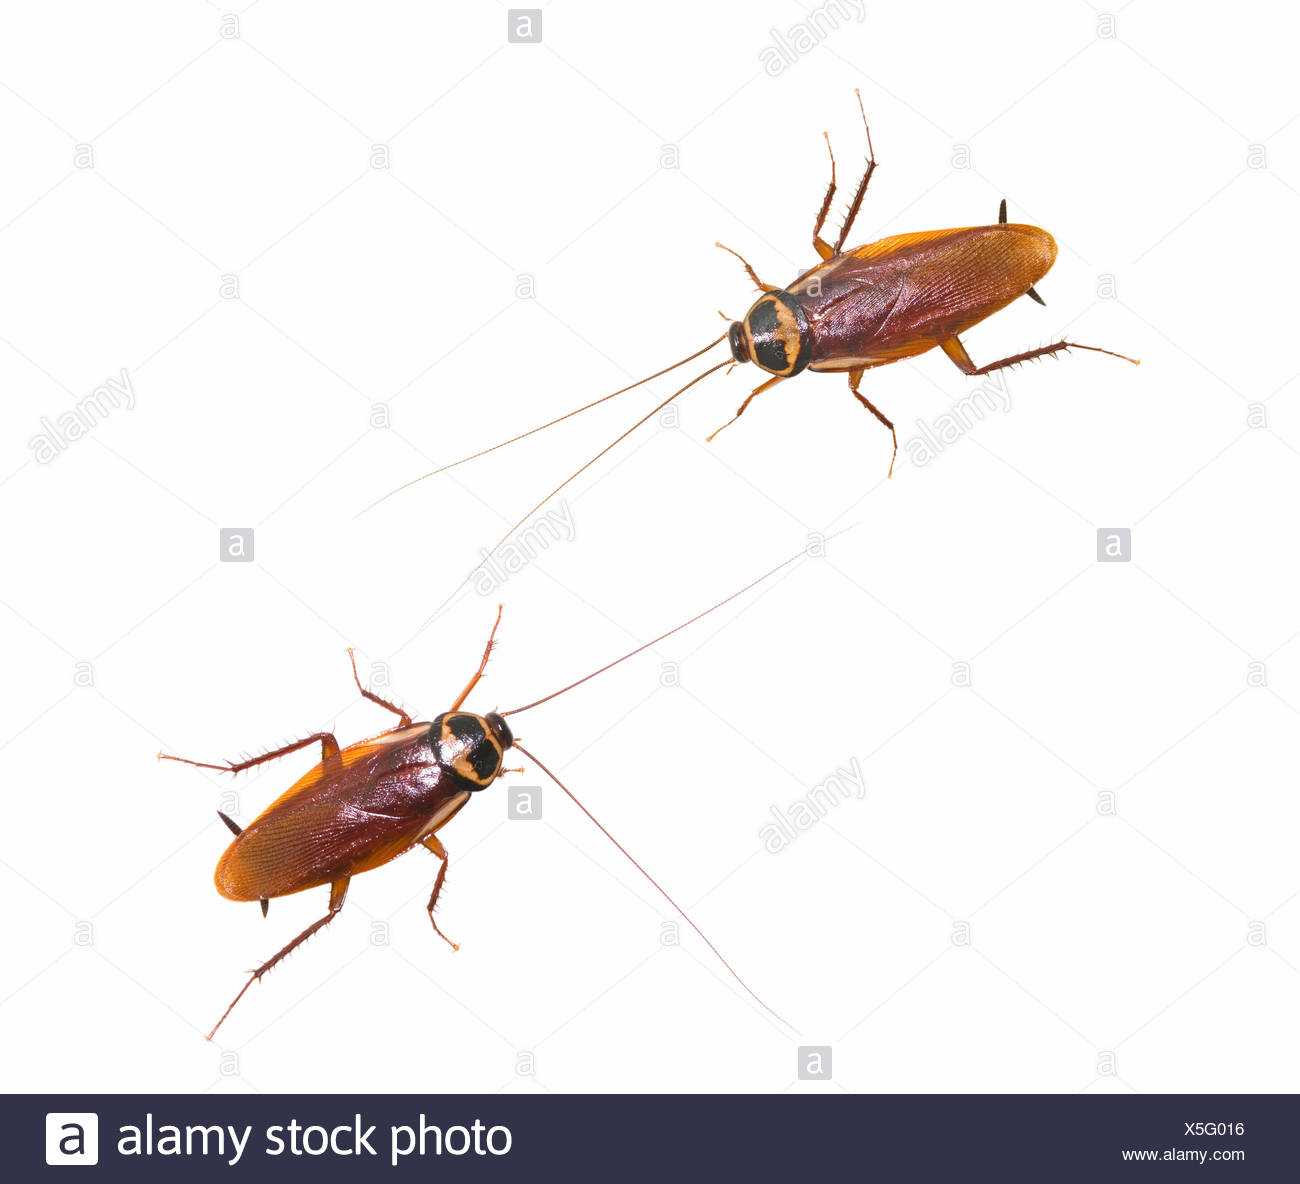 Roach Back Insect Pest Stock Photos & Roach Back Insect Pest Stock ...